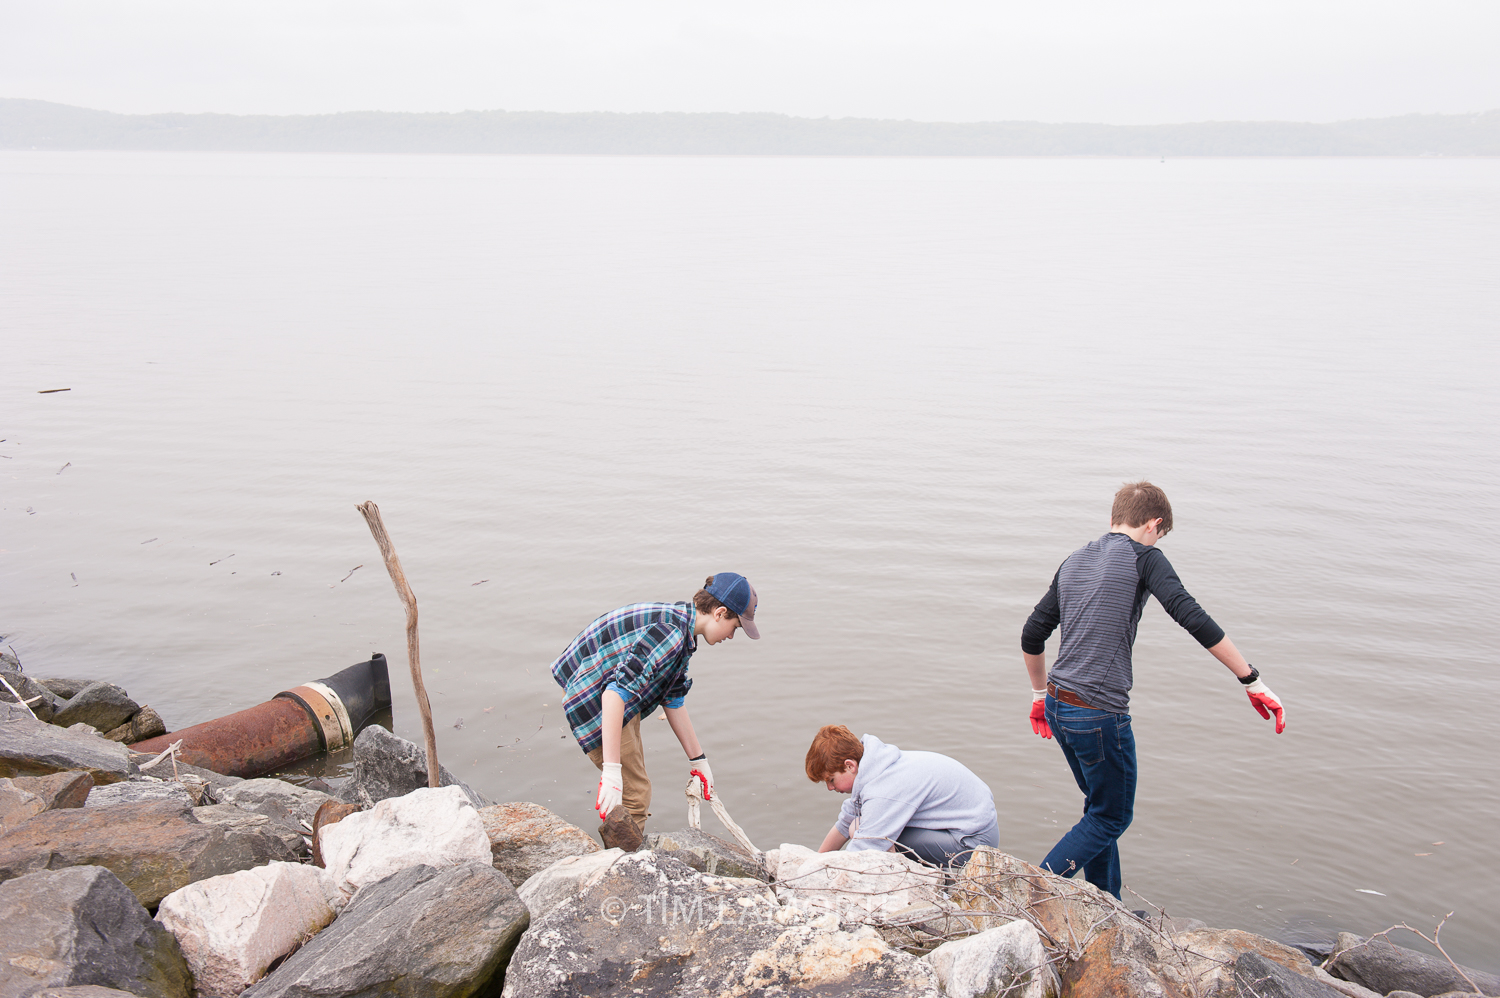 Hudson Svigals, Miles Demarest, and Ryan Carron at Scenic Hudson Park in Irvington, N.Y.